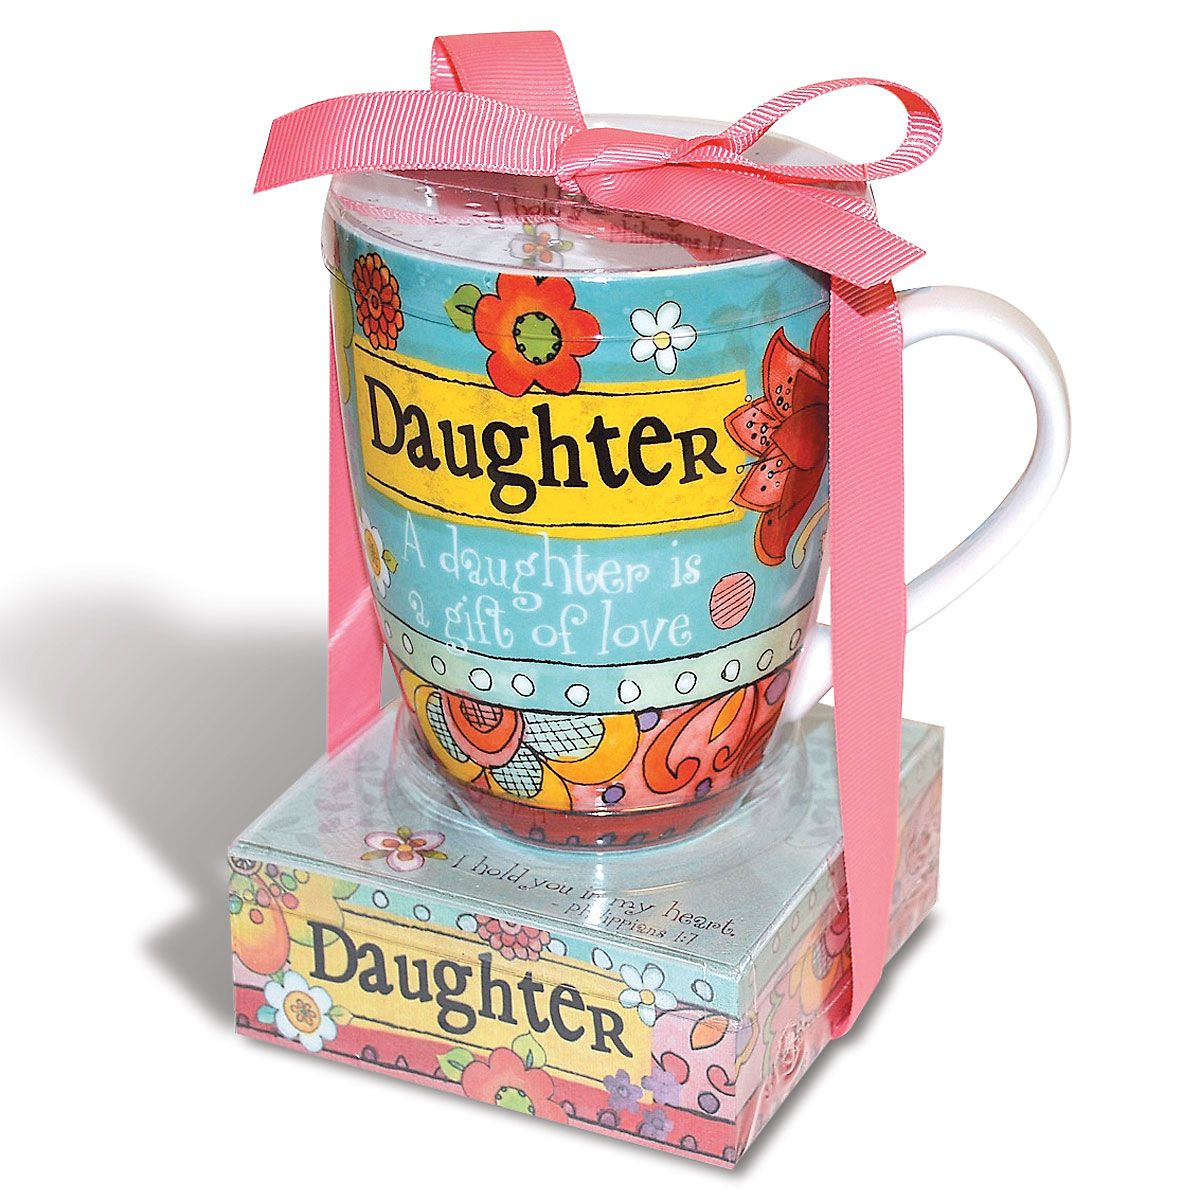 Daughter Mug with Notepad Gift Set